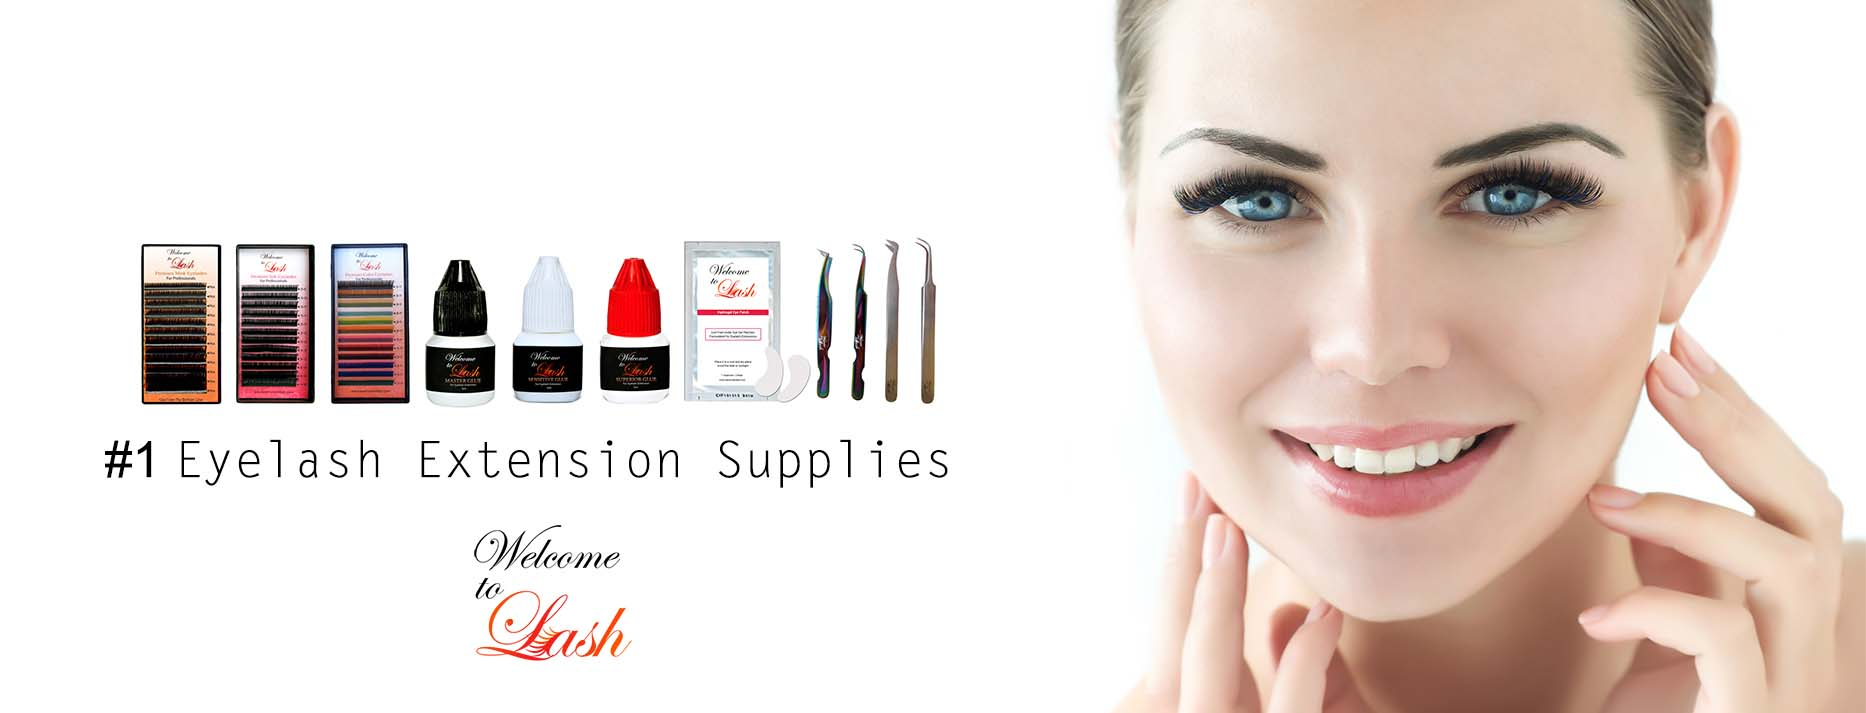 Eyelash Supplies